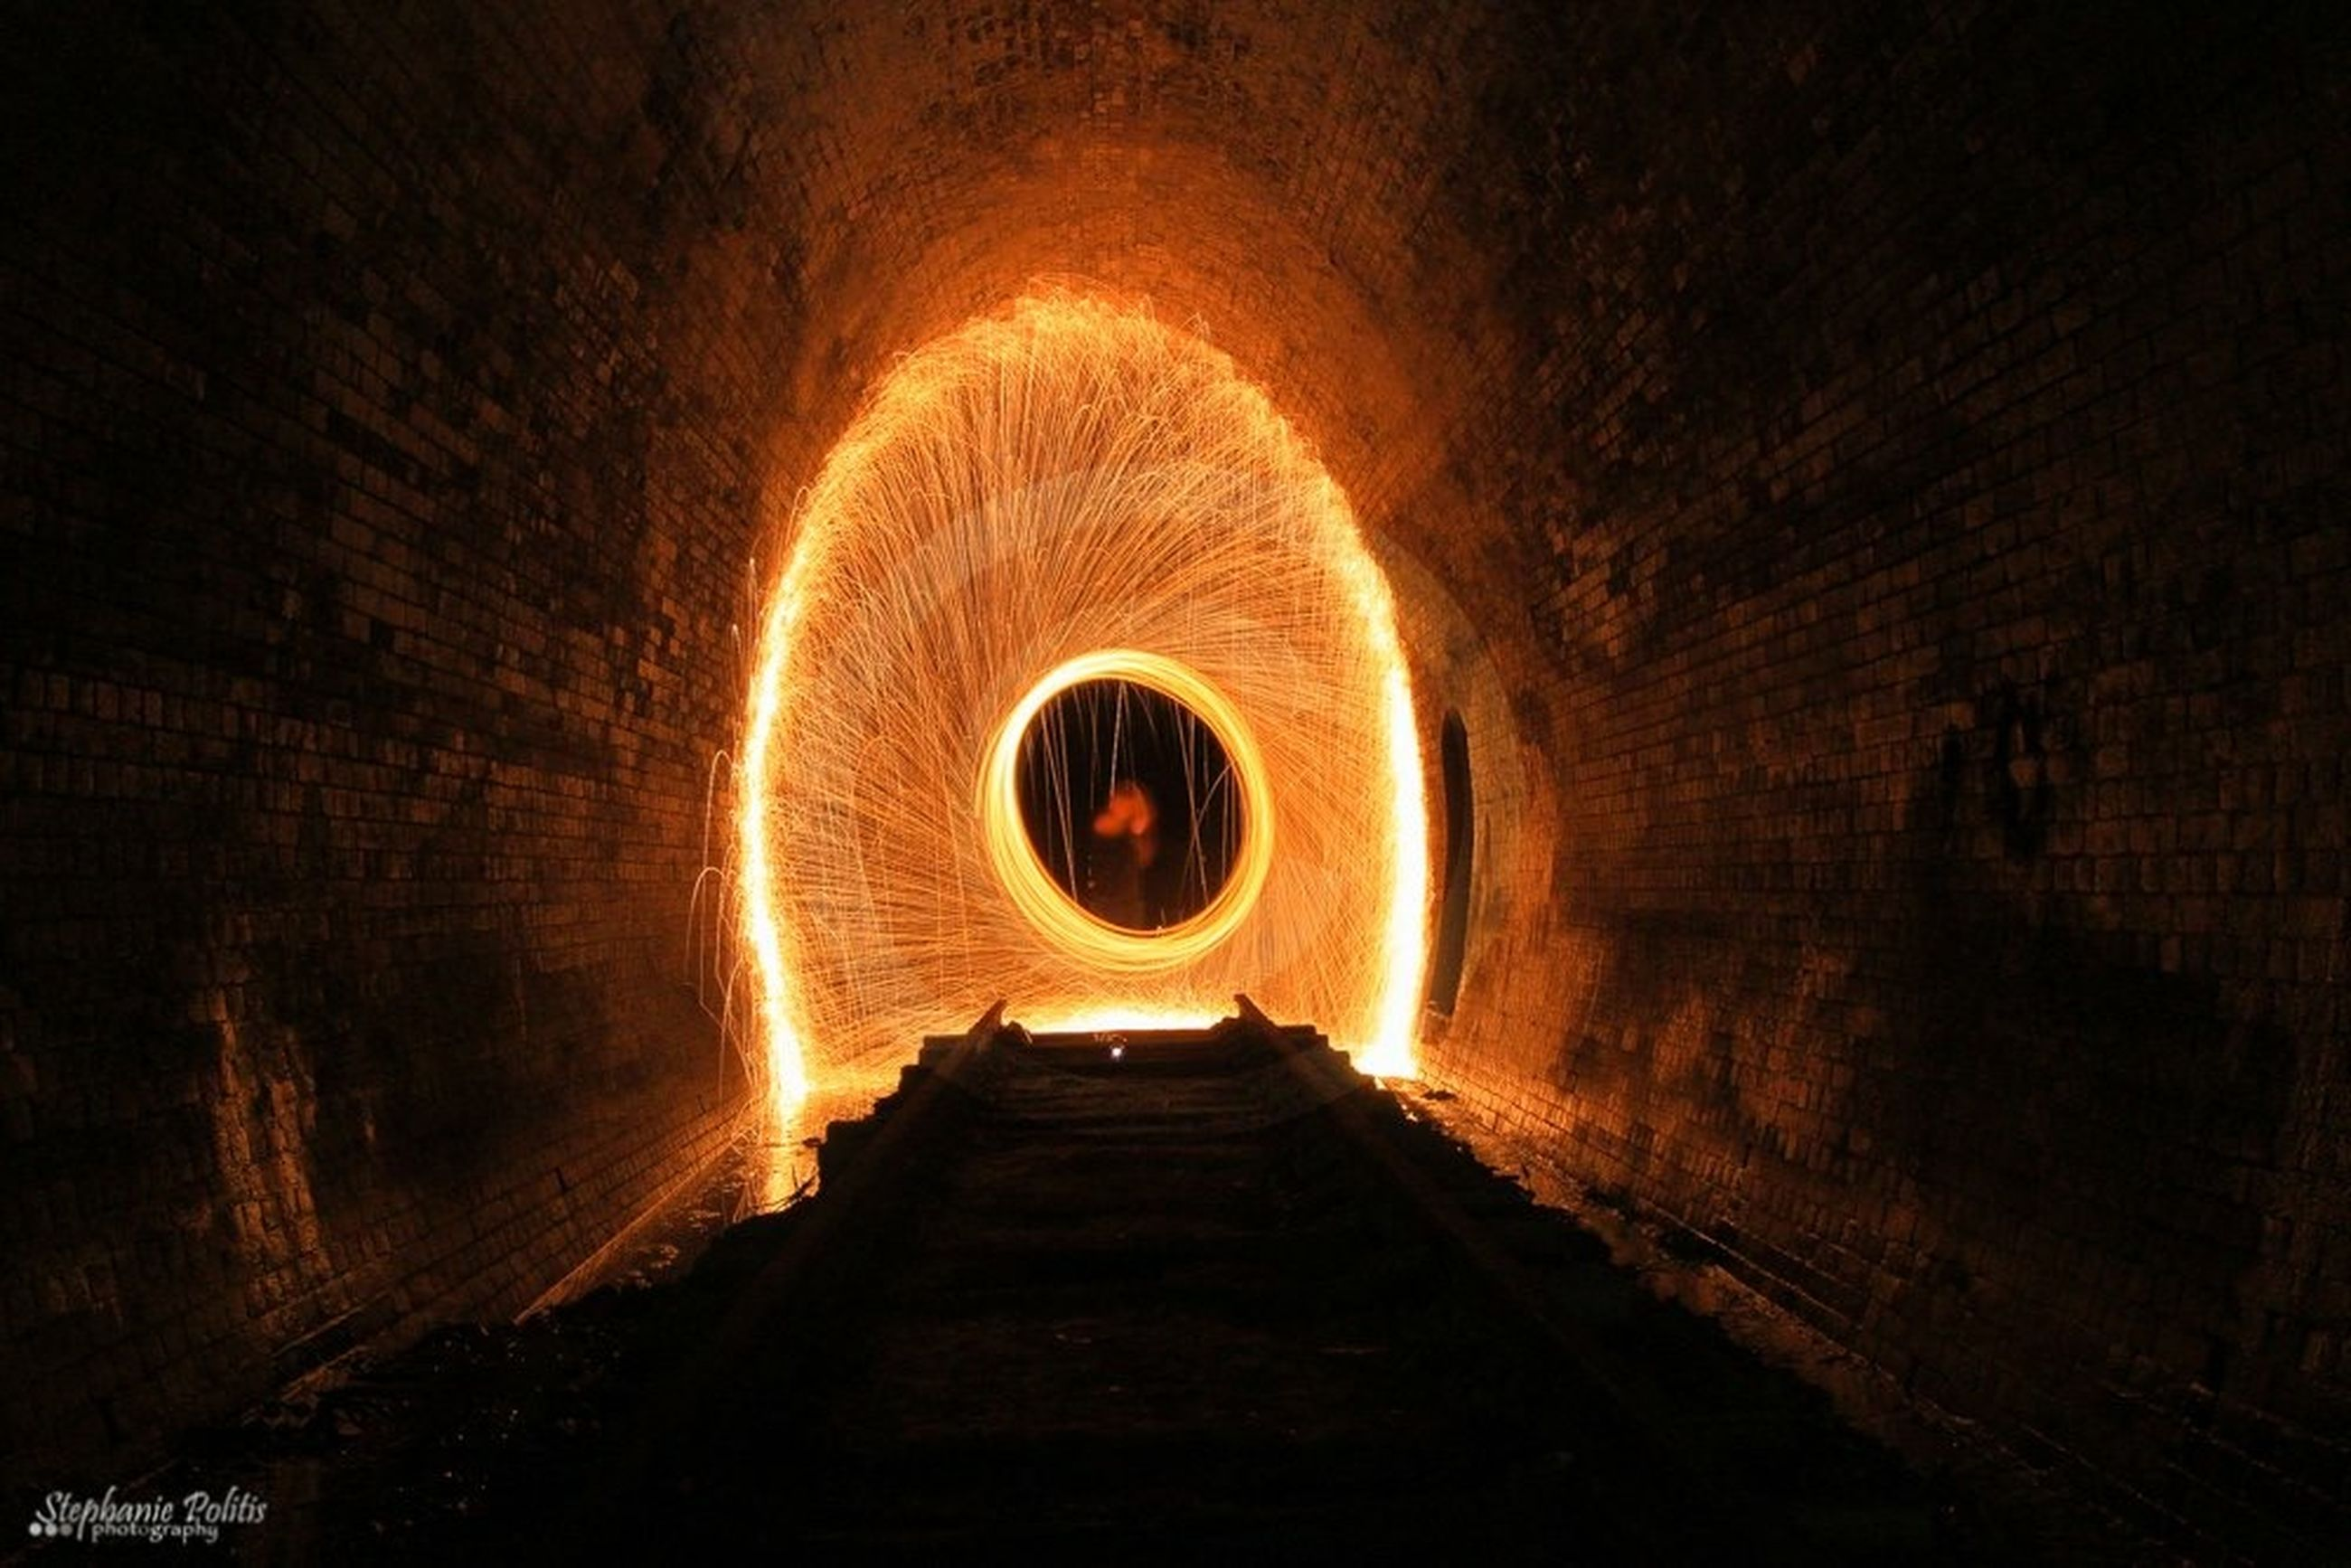 tunnel, the way forward, illuminated, indoors, arch, diminishing perspective, vanishing point, lighting equipment, built structure, architecture, night, light at the end of the tunnel, ceiling, light - natural phenomenon, wall - building feature, transportation, no people, electric light, empty, archway